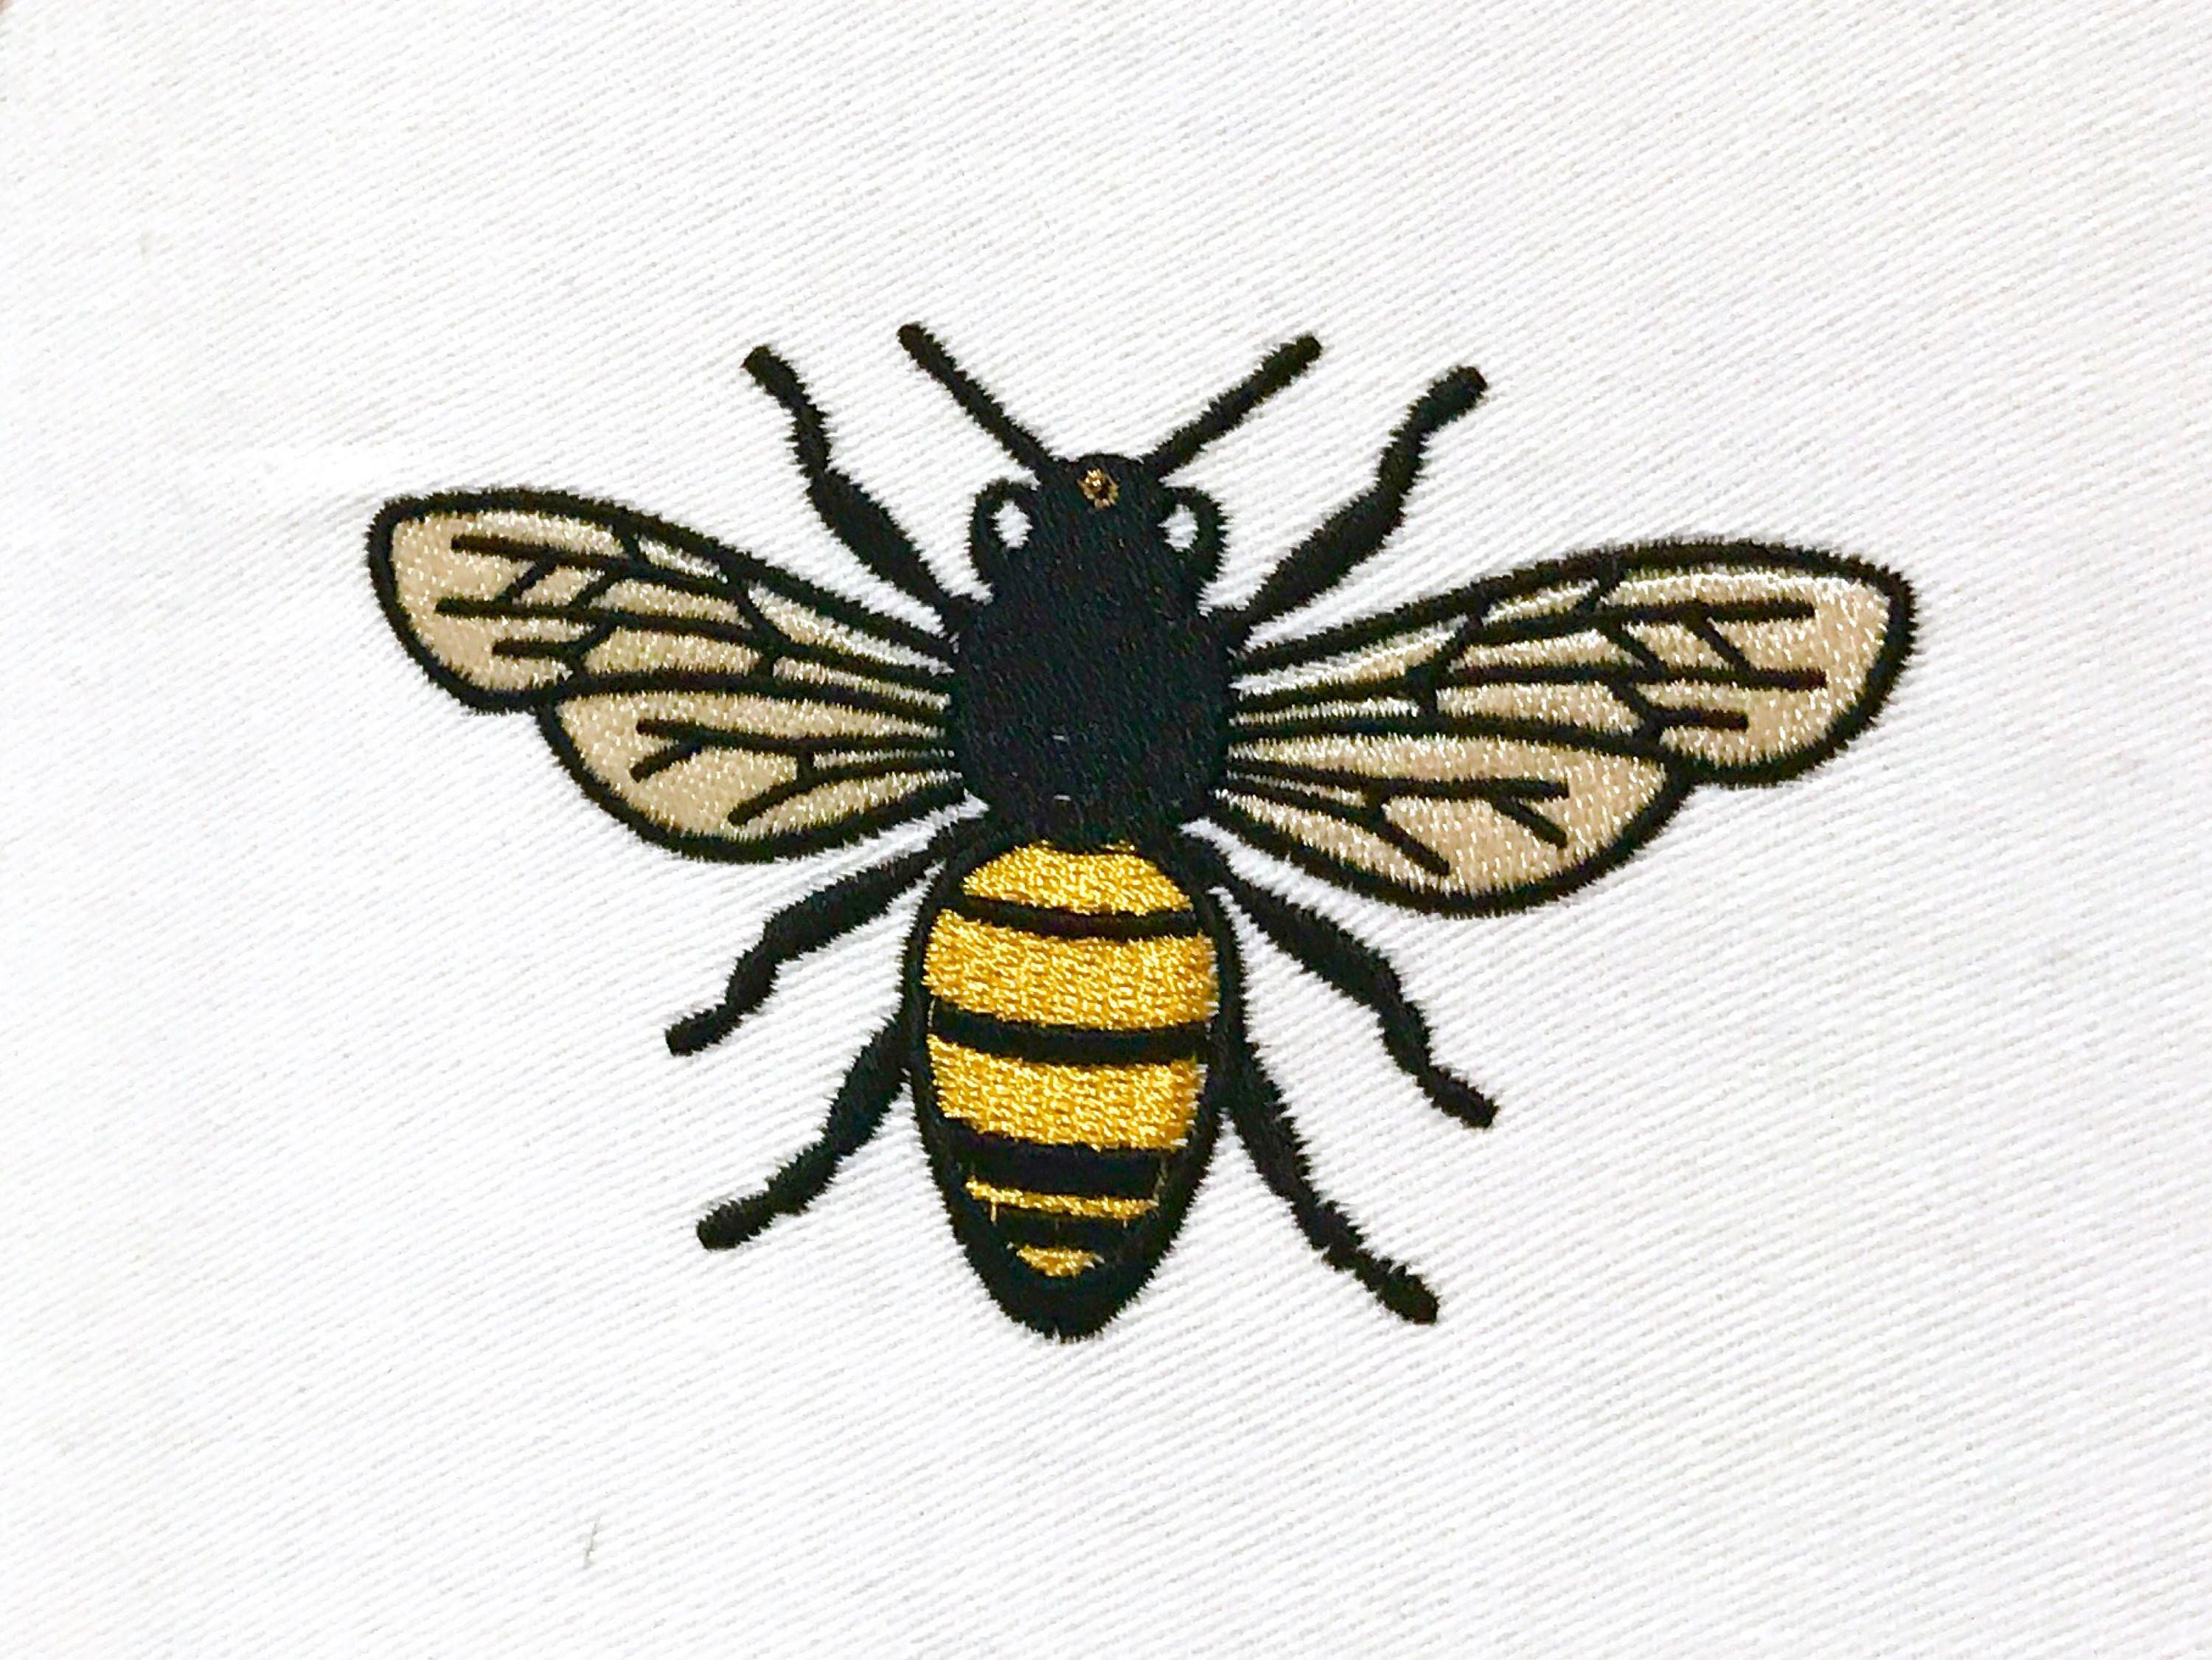 402f848af Bee embroidery - Machine Embroidery File design 4 x 4 inch hoop by  Oopsidaisi on Etsy